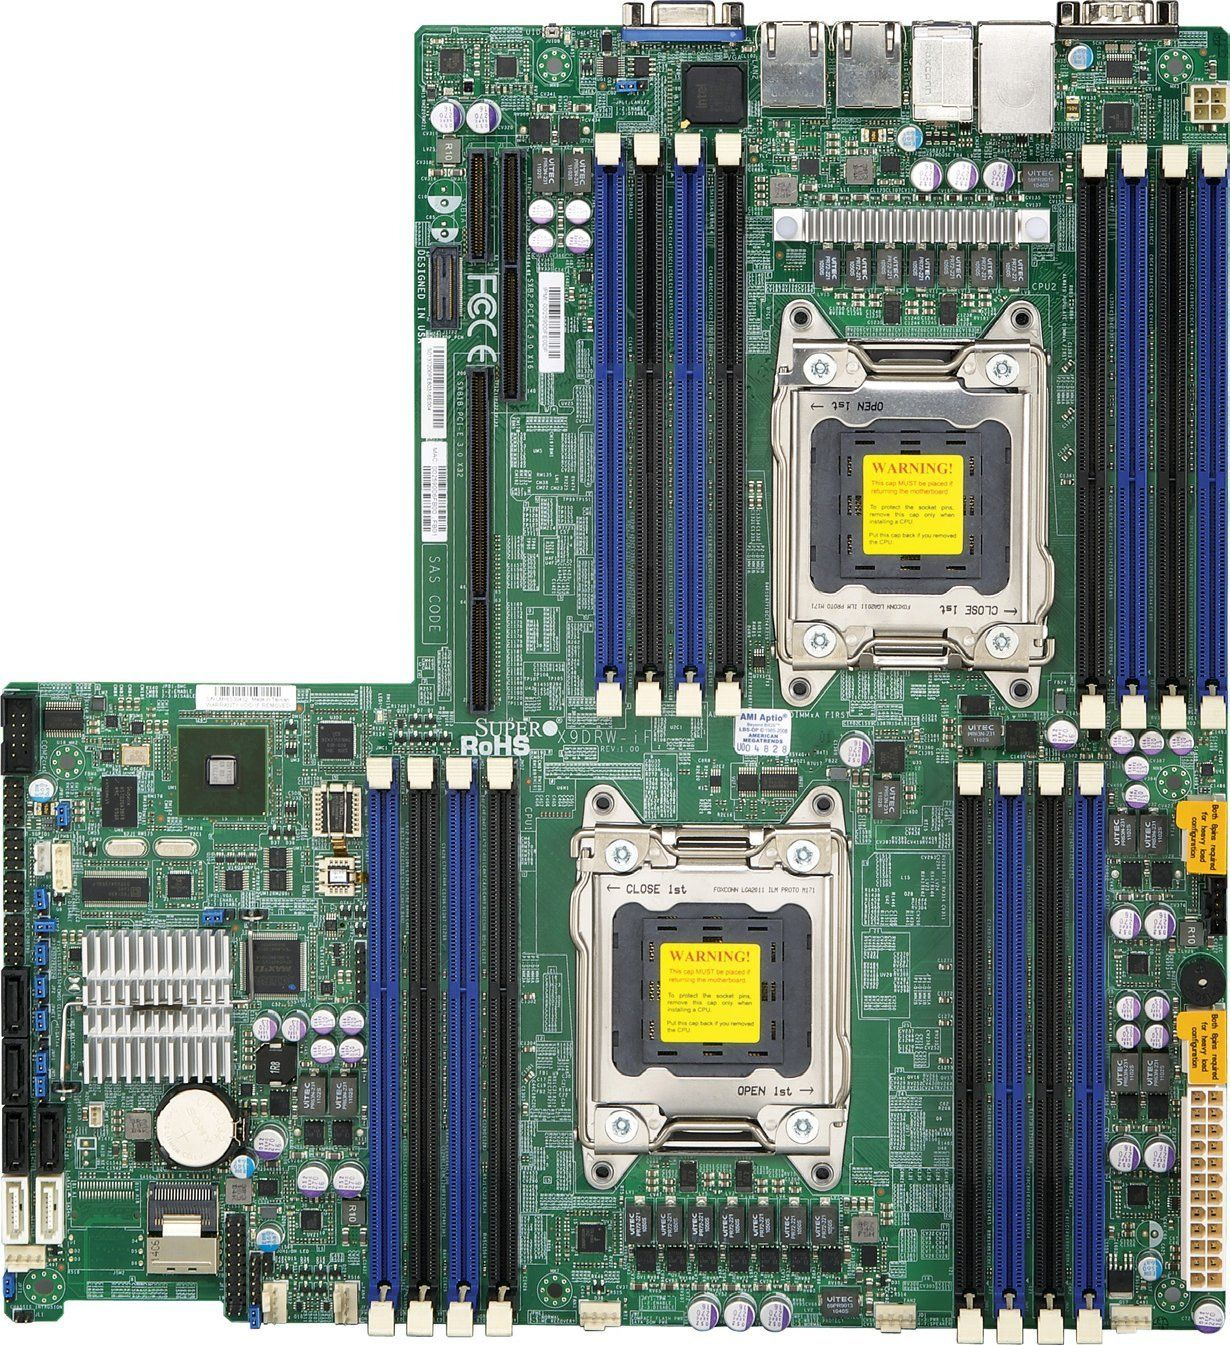 Updating the BIOS firmware on the Supermicro X9DRW-iF – the smalley